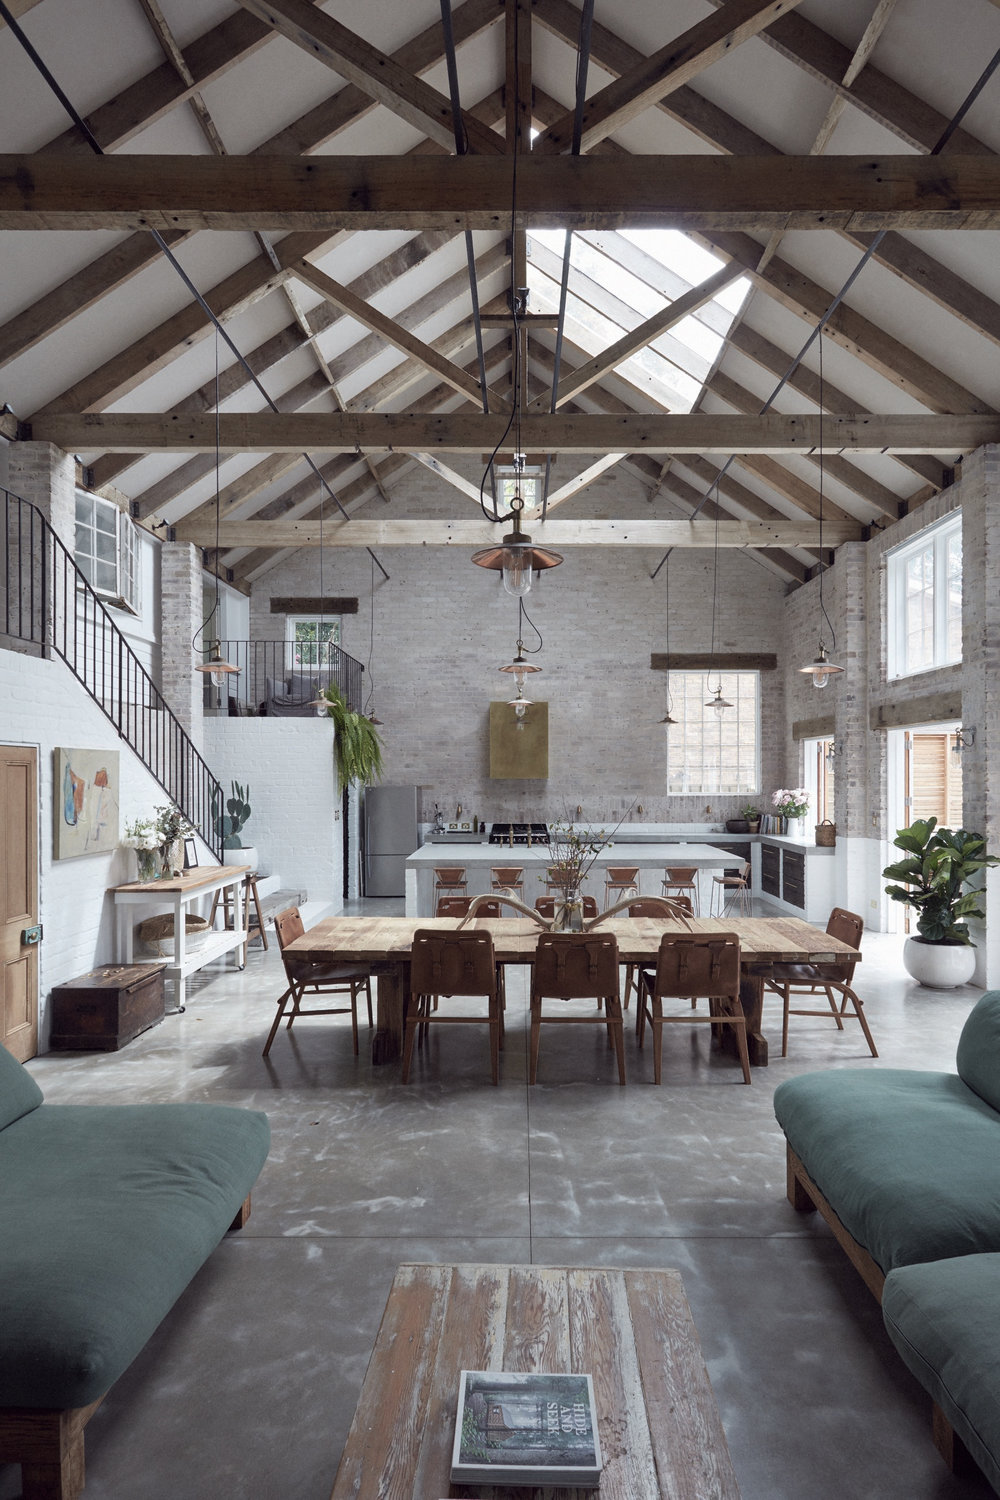 A Modern Rustic Barnhouse in Sydney — THE NORDROOM on shed house plans, rustic outhouse plans, rustic wood creations, pole barn plans, pond house plans, barn wood projects plans, rustic bungalow with guest house, rustic bathroom plans, pool house plans, rustic bed furniture, urban cottage house plans, farm style house plans, rustic bedroom furniture, shelter house plans, gingerbread cottage house plans, rustic homes, log cabin bird house plans, old farmhouse style house plans, gingerbread playhouse plans, barn building plans,